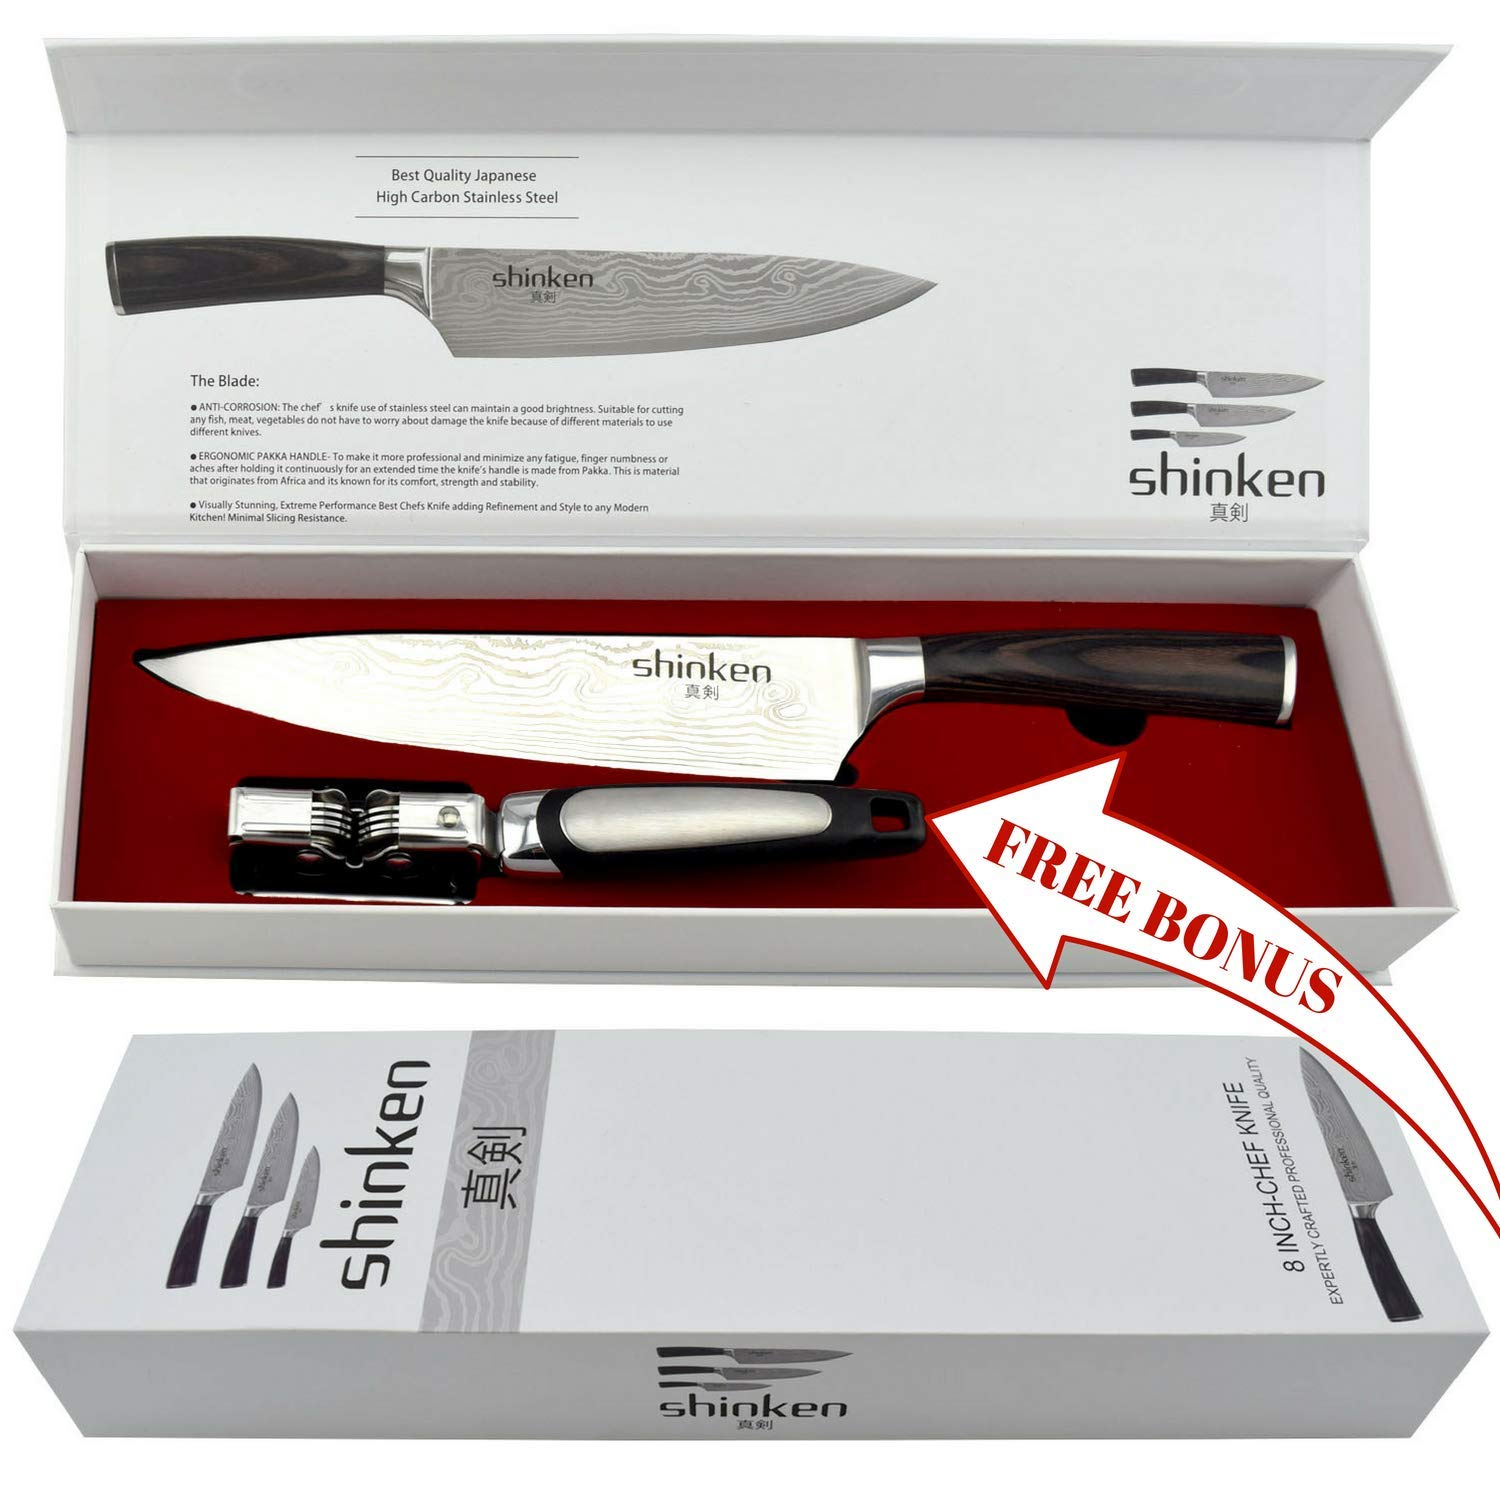 Professional Kitchen Chef's Knife 8 Inch,Stainless Steel High Carbon Sharp Blade,For Cutting Meat,Chopping, Slicing, Carving Food & More | BONUS:knife-sharpening tool,Perfect Gift Idea,By Shinken